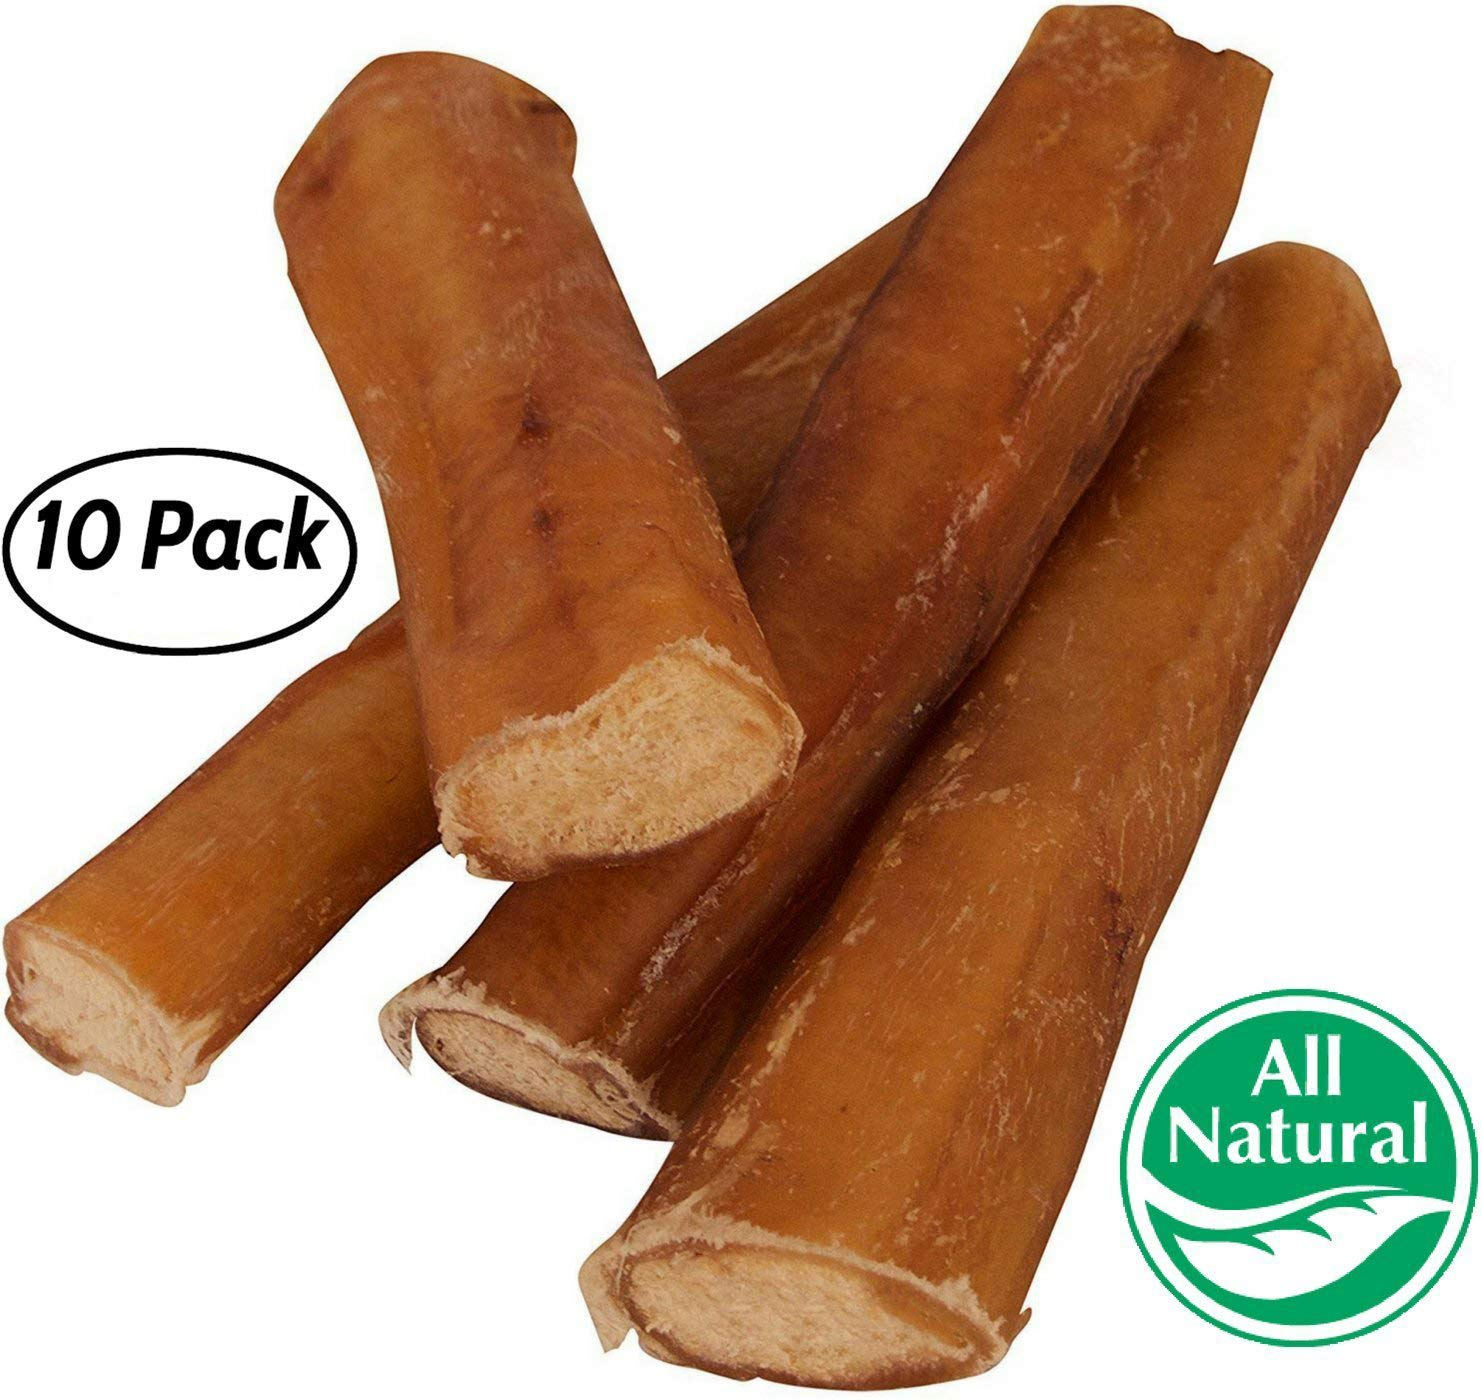 5'' Straight Bully Sticks for Dogs [Large Thickness] (10 Pack) - Natural Low Odor Bulk Dog Dental Treats, Best Thick Pizzle Chew Stix, 5 inch, Chemical Free